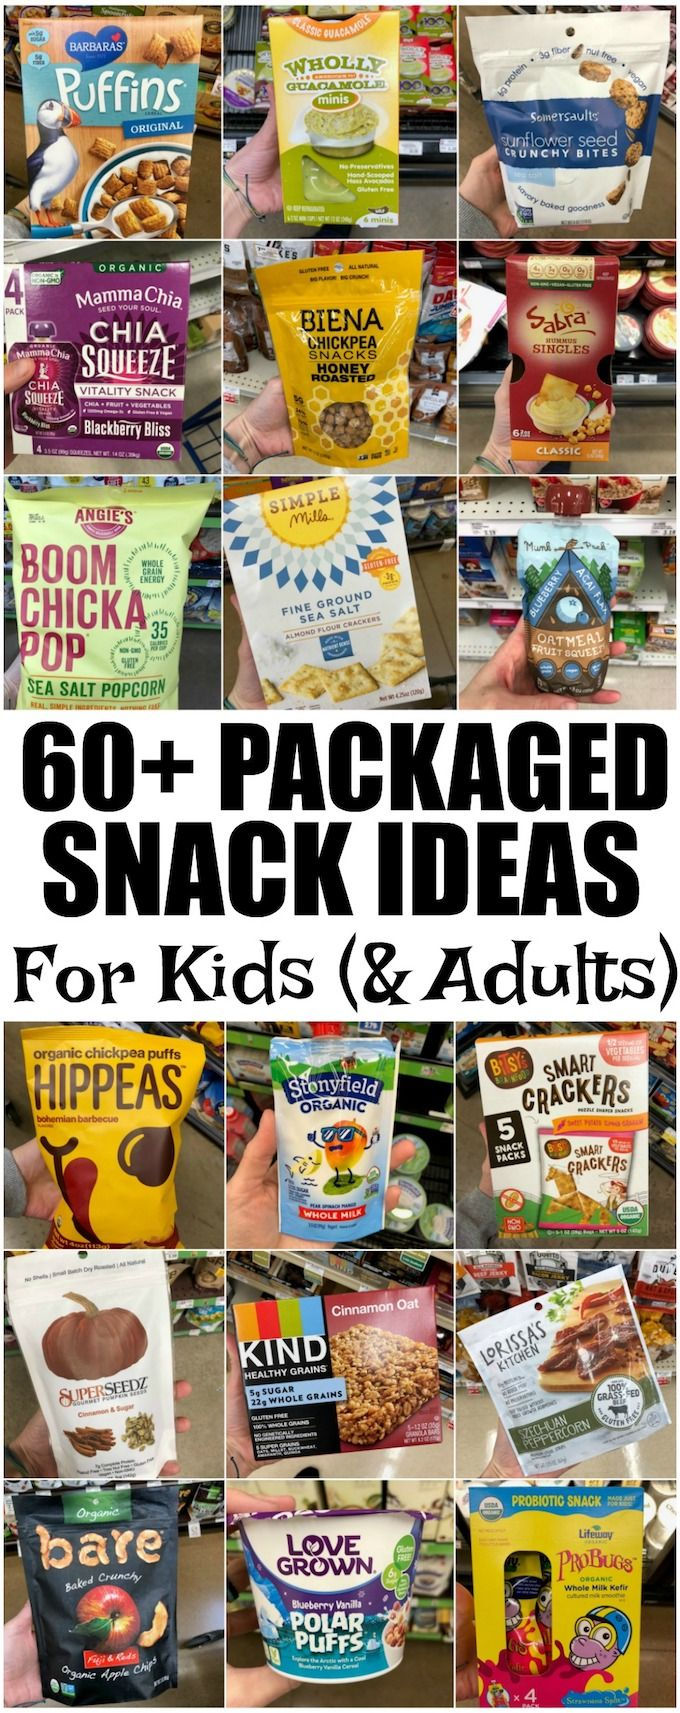 This list of healthy packaged snacks for kids (and adults too!) is meant to provide inspiration for busy parents who are looking for some new ideas. Homemade snacks are great but there are also some good store-bought options available!